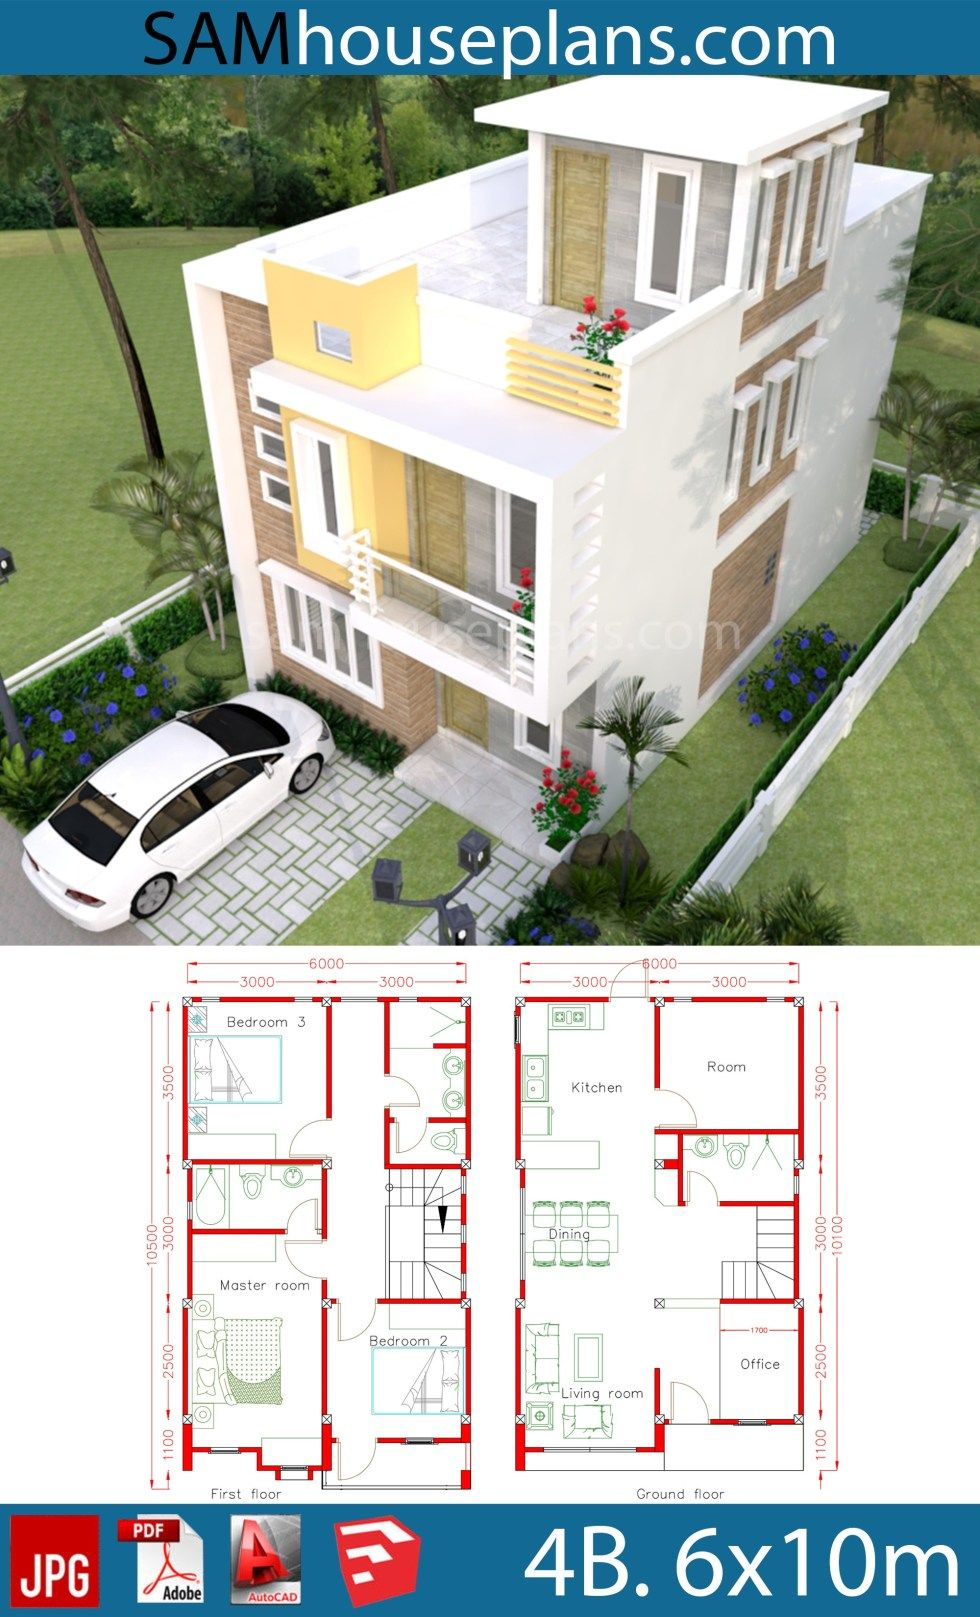 House Plans 6x10m with 4 Rooms